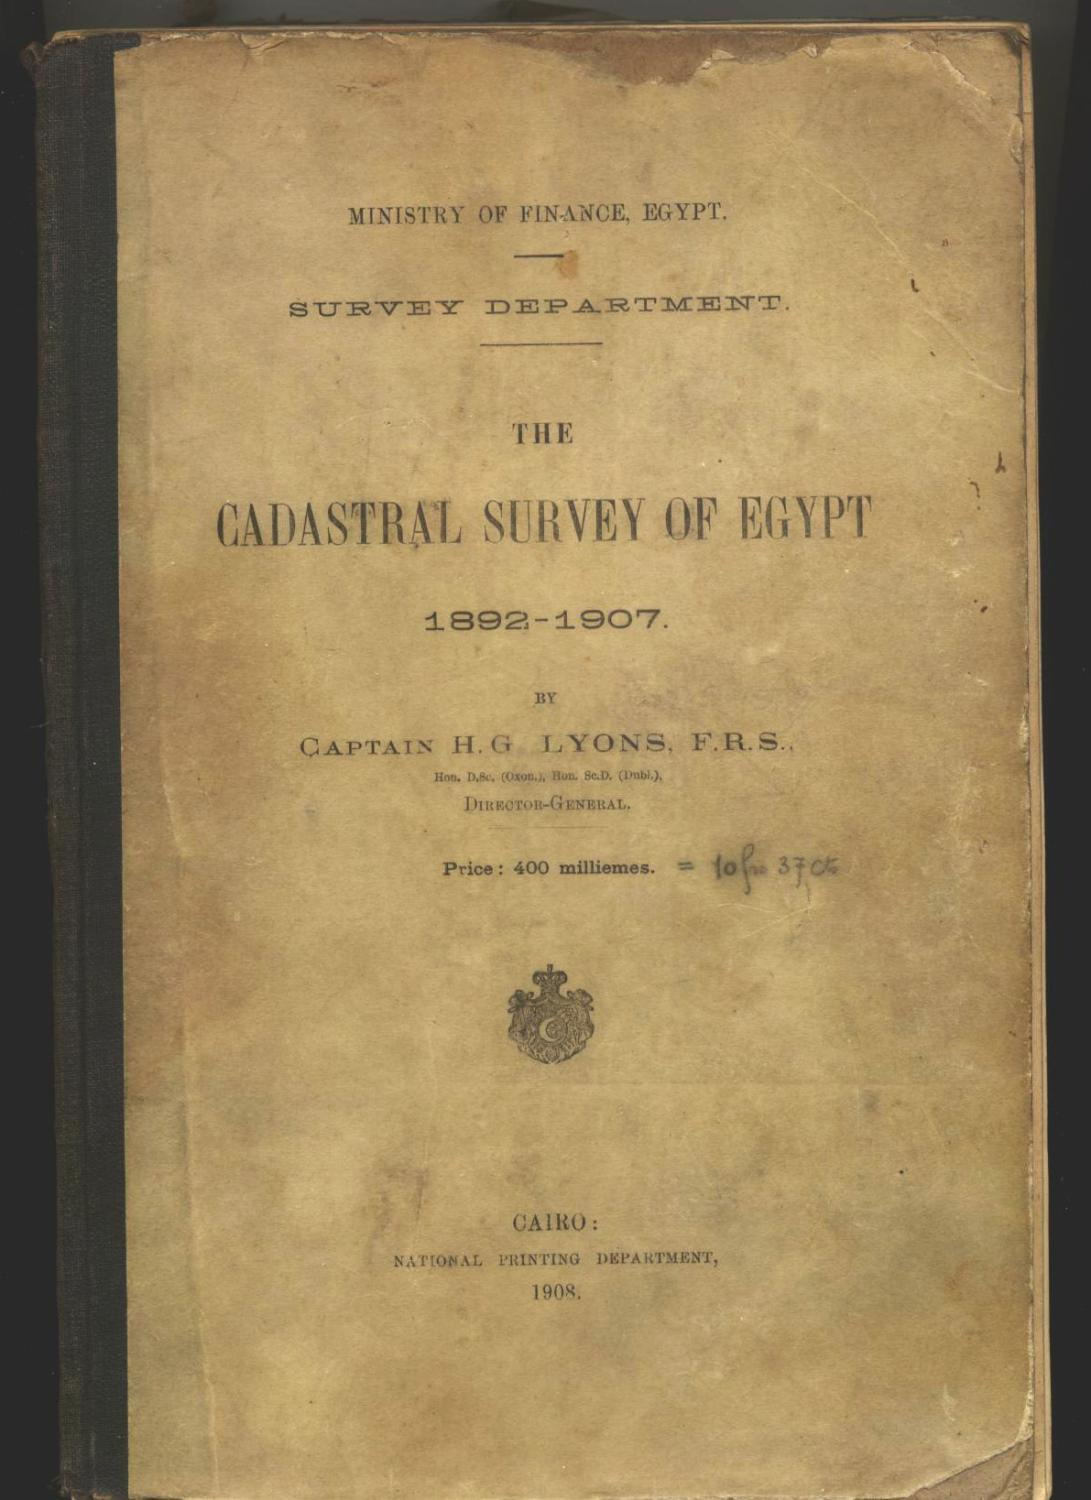 THE CADASTRAL SURVEY OF EGYPT  1892 - 1907